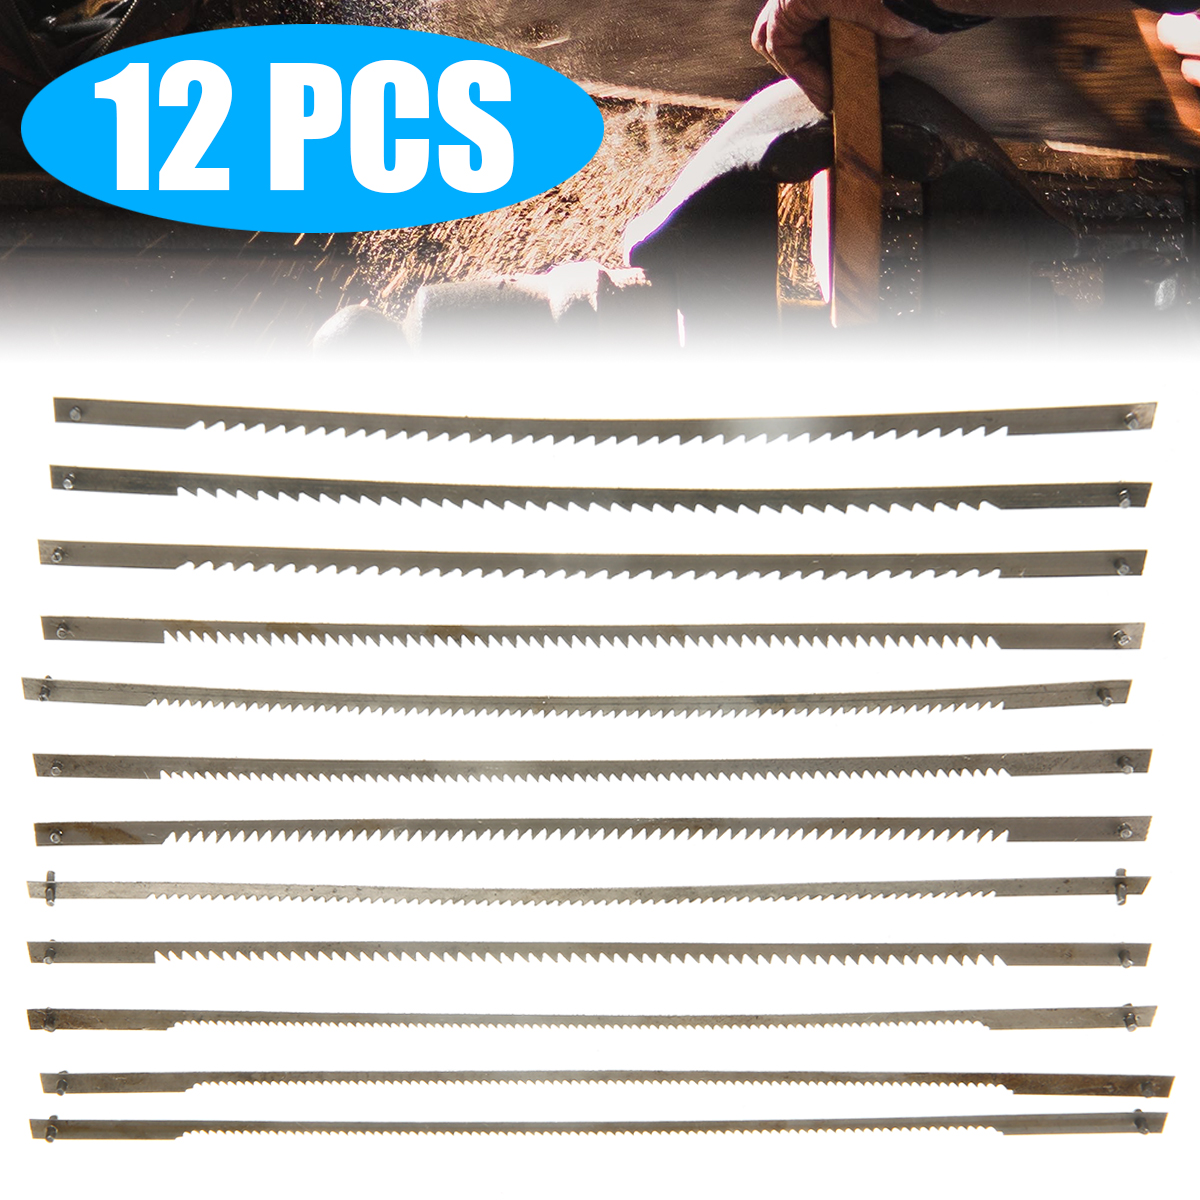 12PCS 127mm Wire Saw Blade Cutter Jewelry Cutting Jig  Pinned Scroll Saw Blades 10/15/18/24 Teeth Woodworking Hand Craft Tool